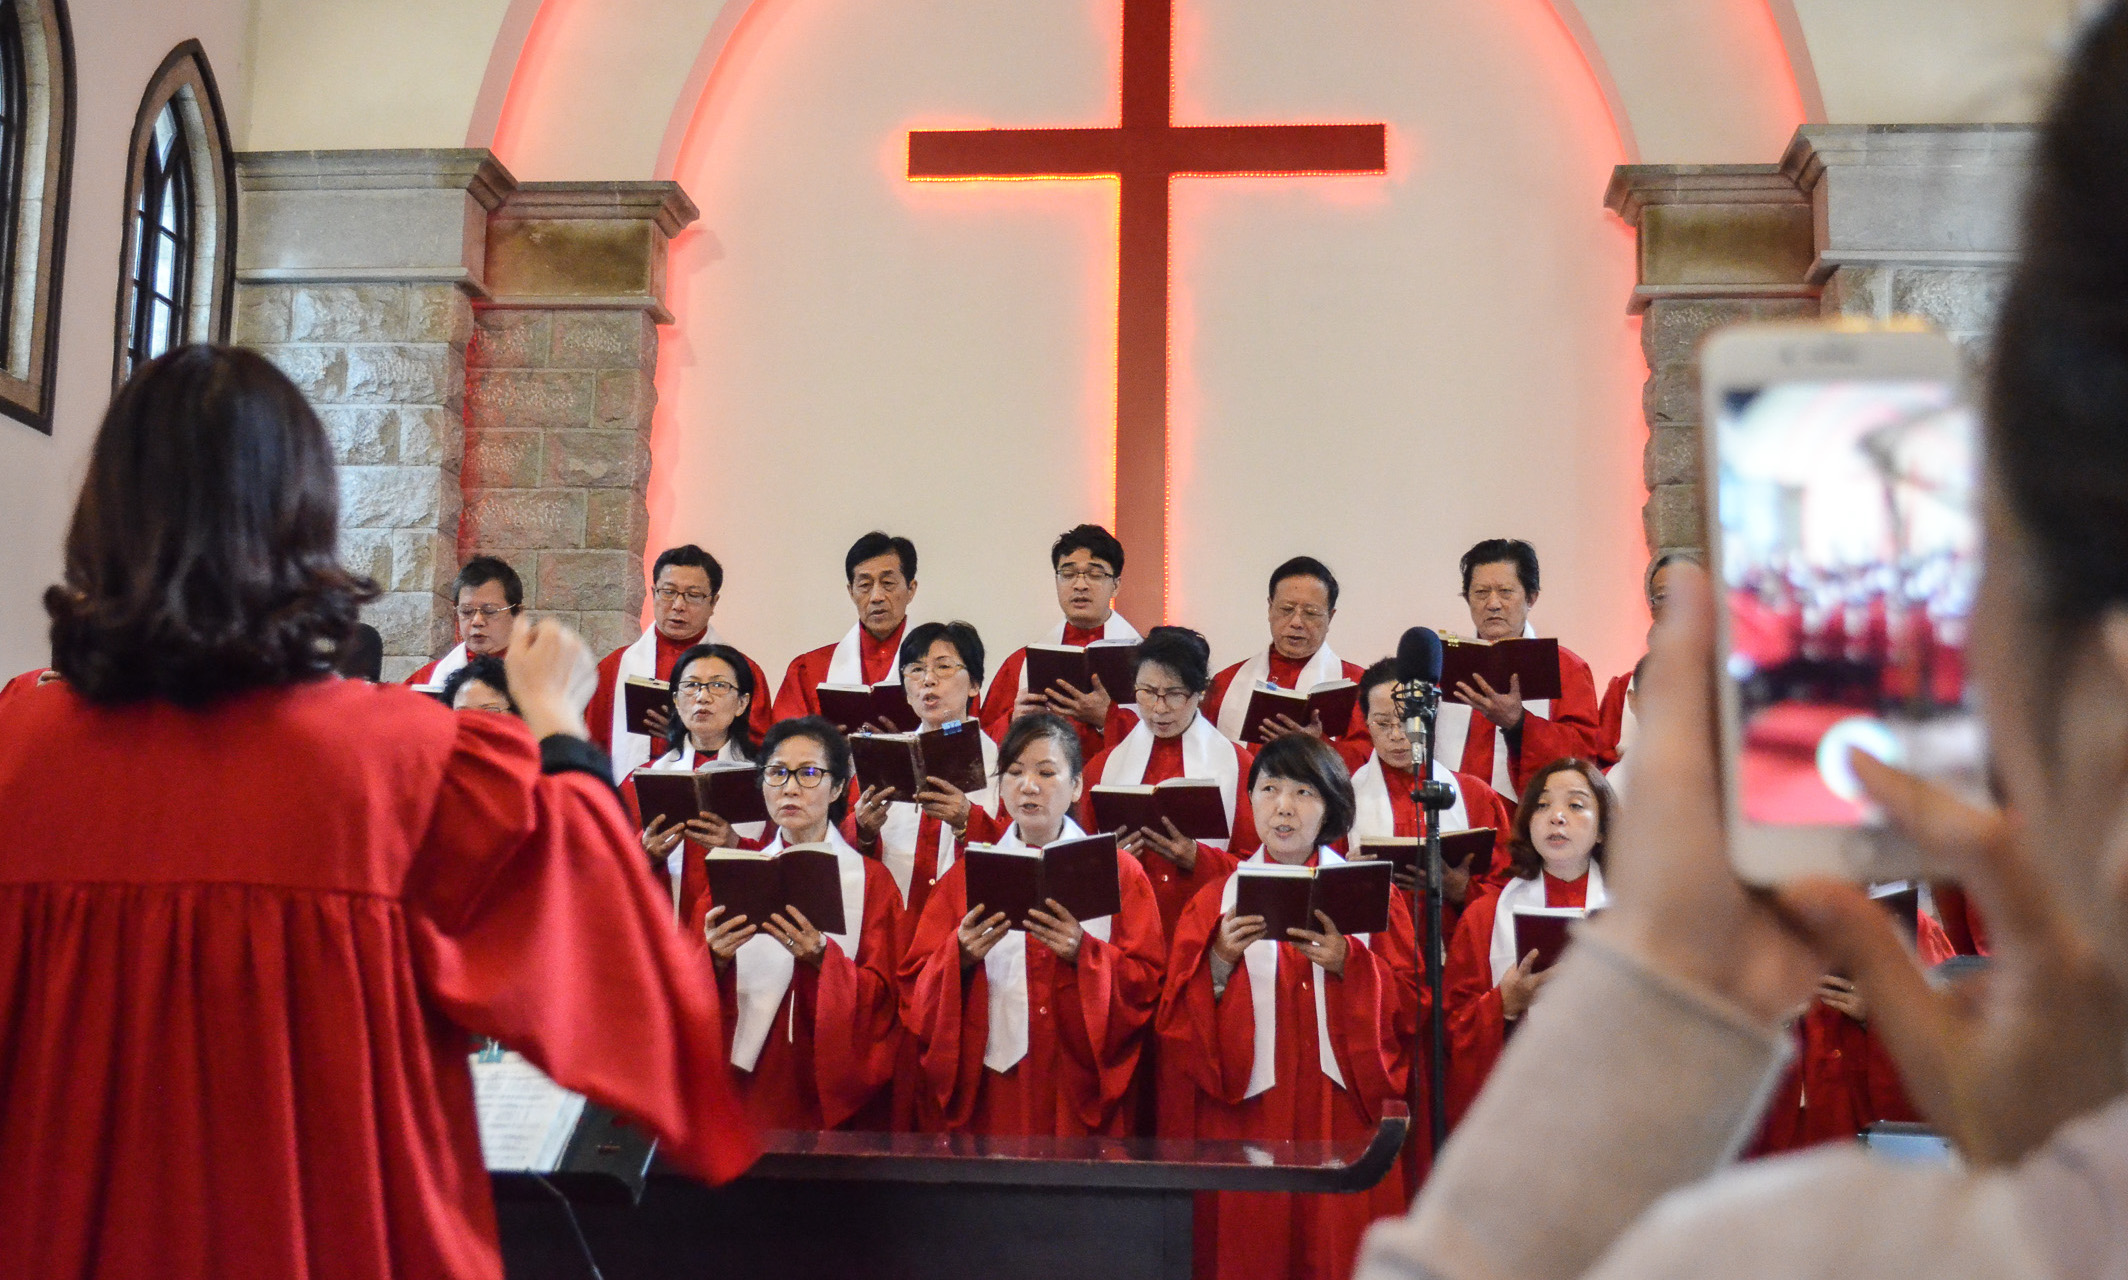 The true state of the Chinese Church